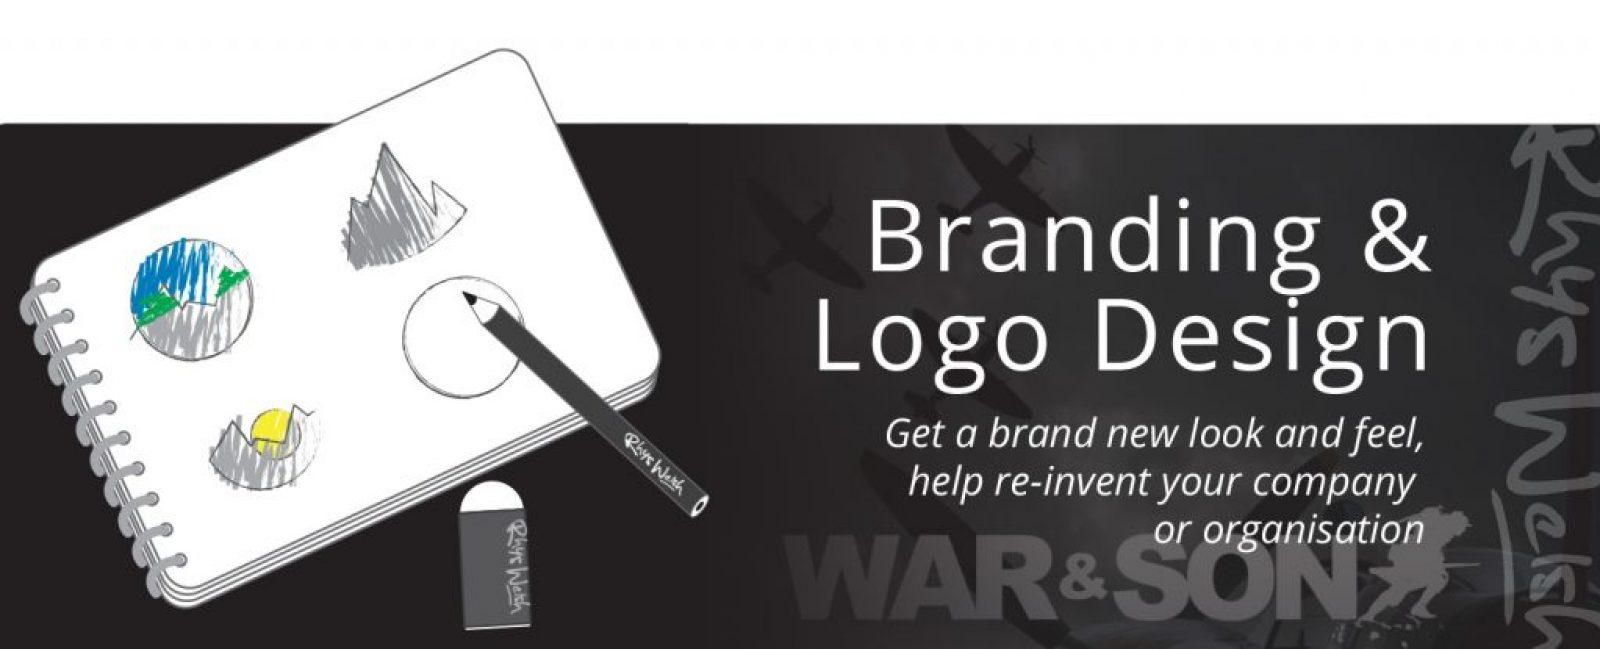 Branding-Logo-Design-Graphic-for-websites-cardiff